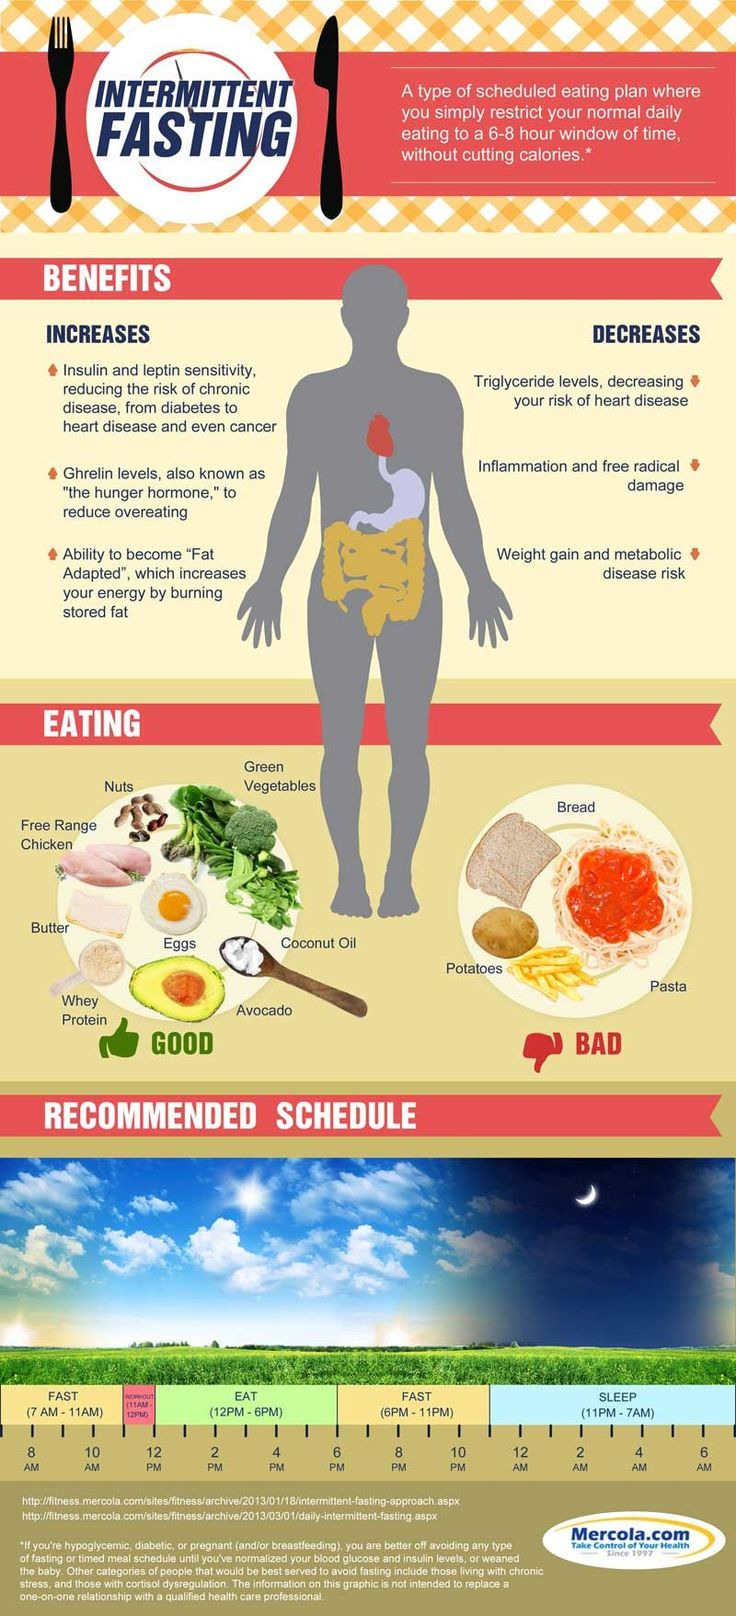 This a bit different than the Every Other Day Diet (every other day near-fasting) that I'm doing, but shows some of the known benefits.